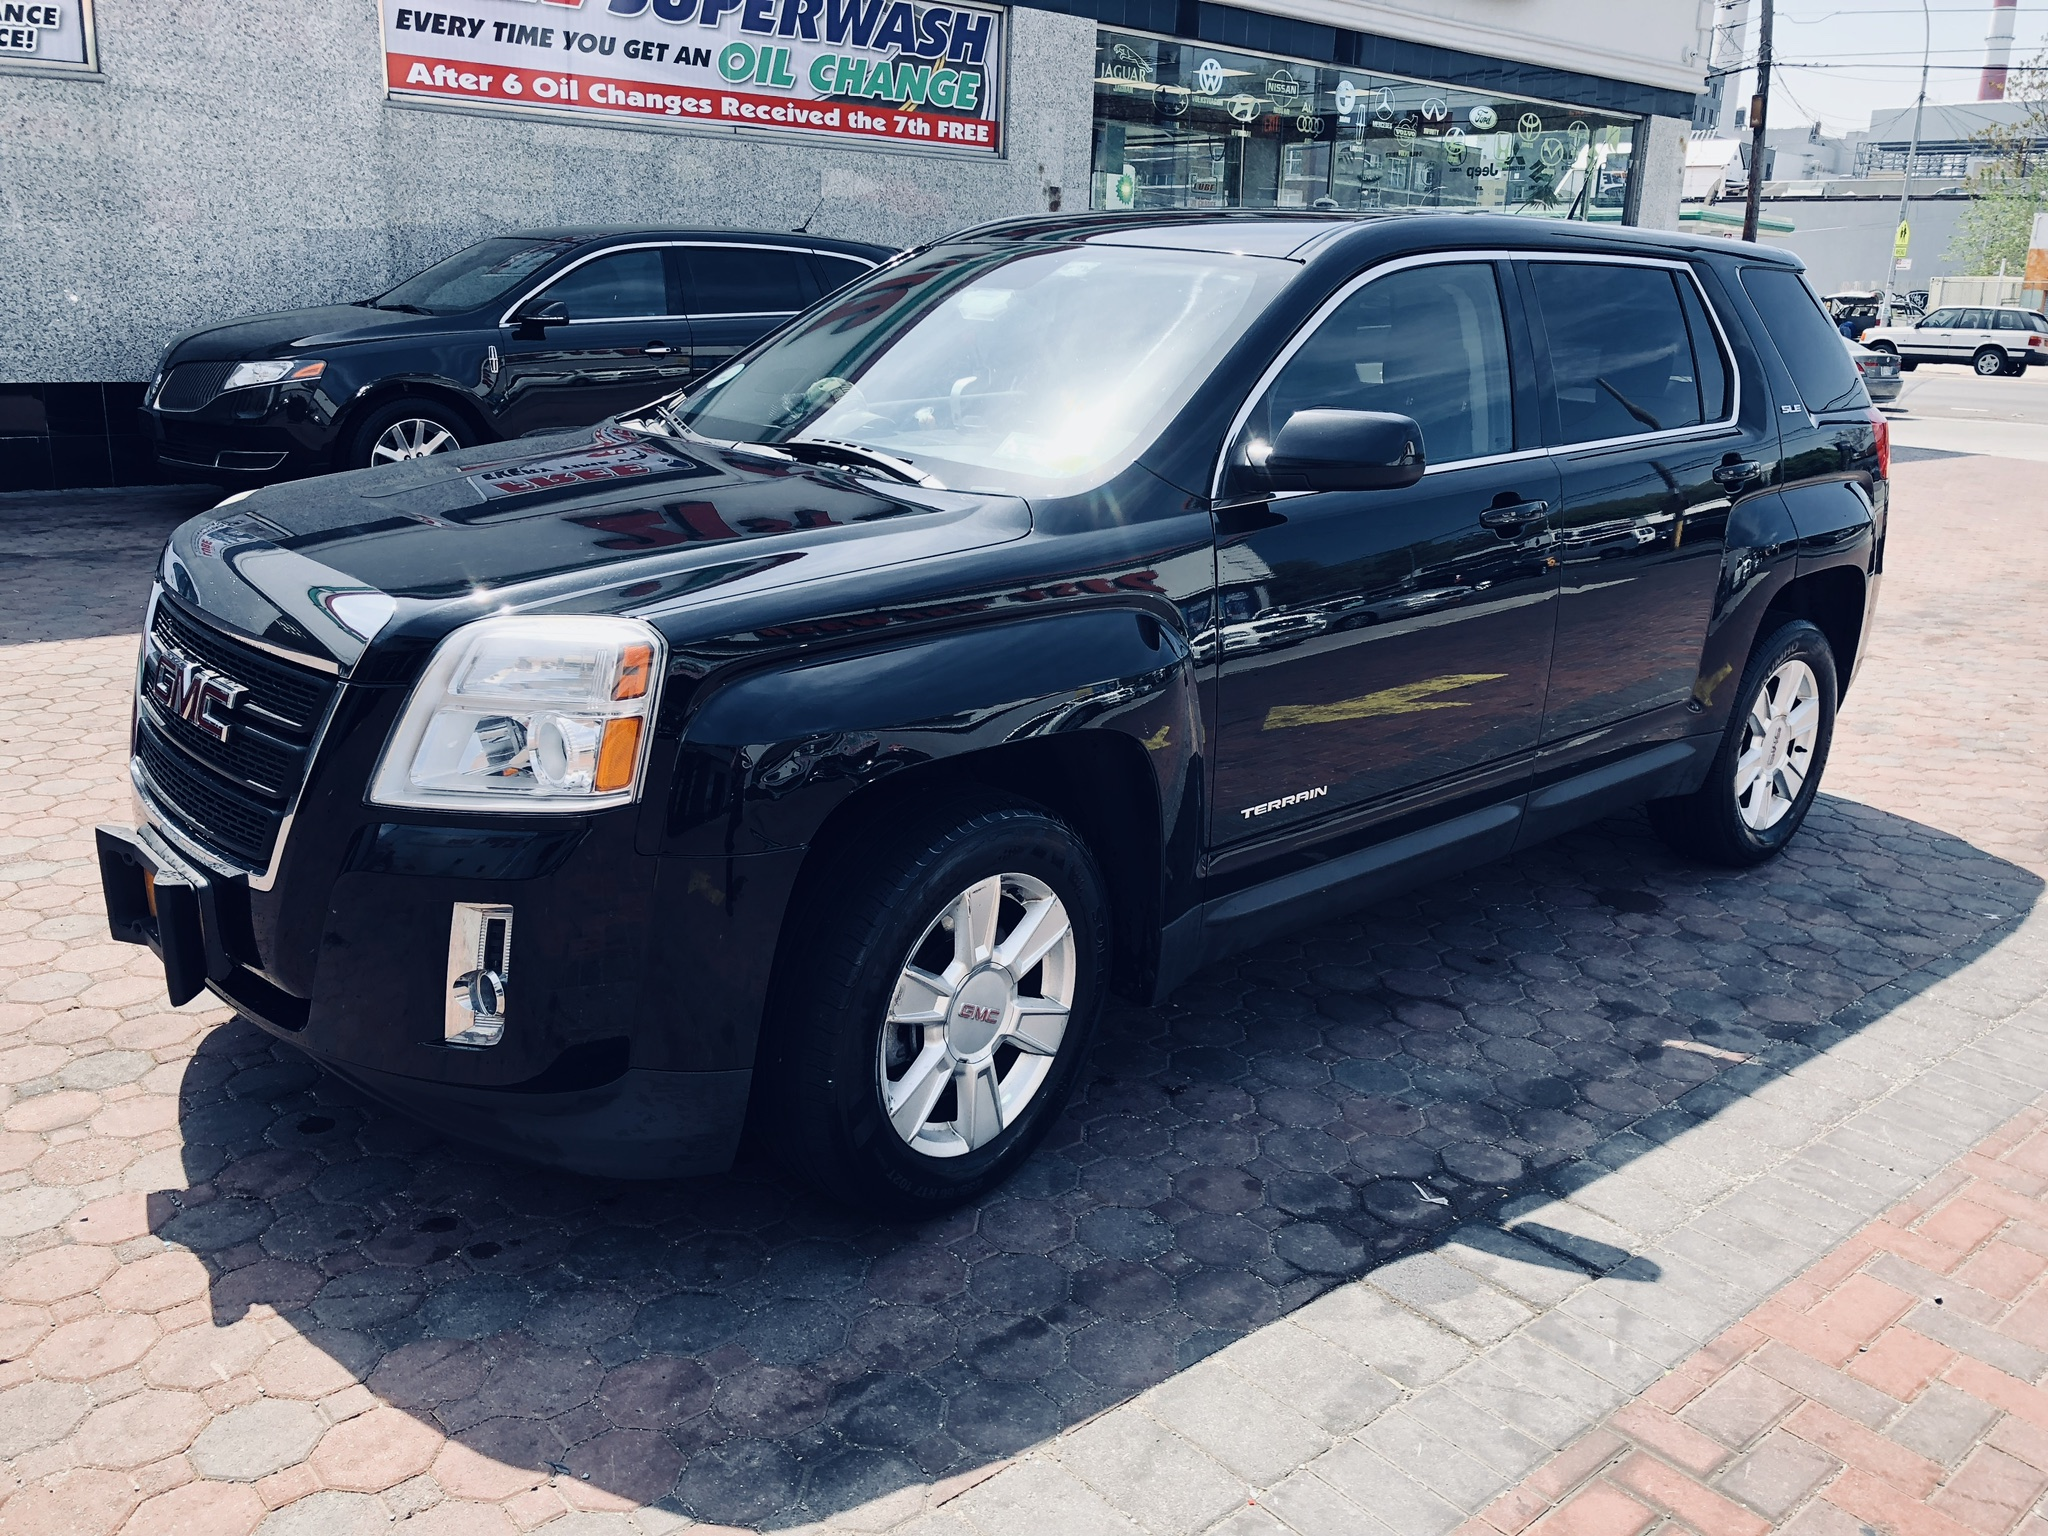 425 Gmc Terrain 2012 For 425 A Week Uber Nyc Market Main Source Of Uber And Lyft Rentals Leases